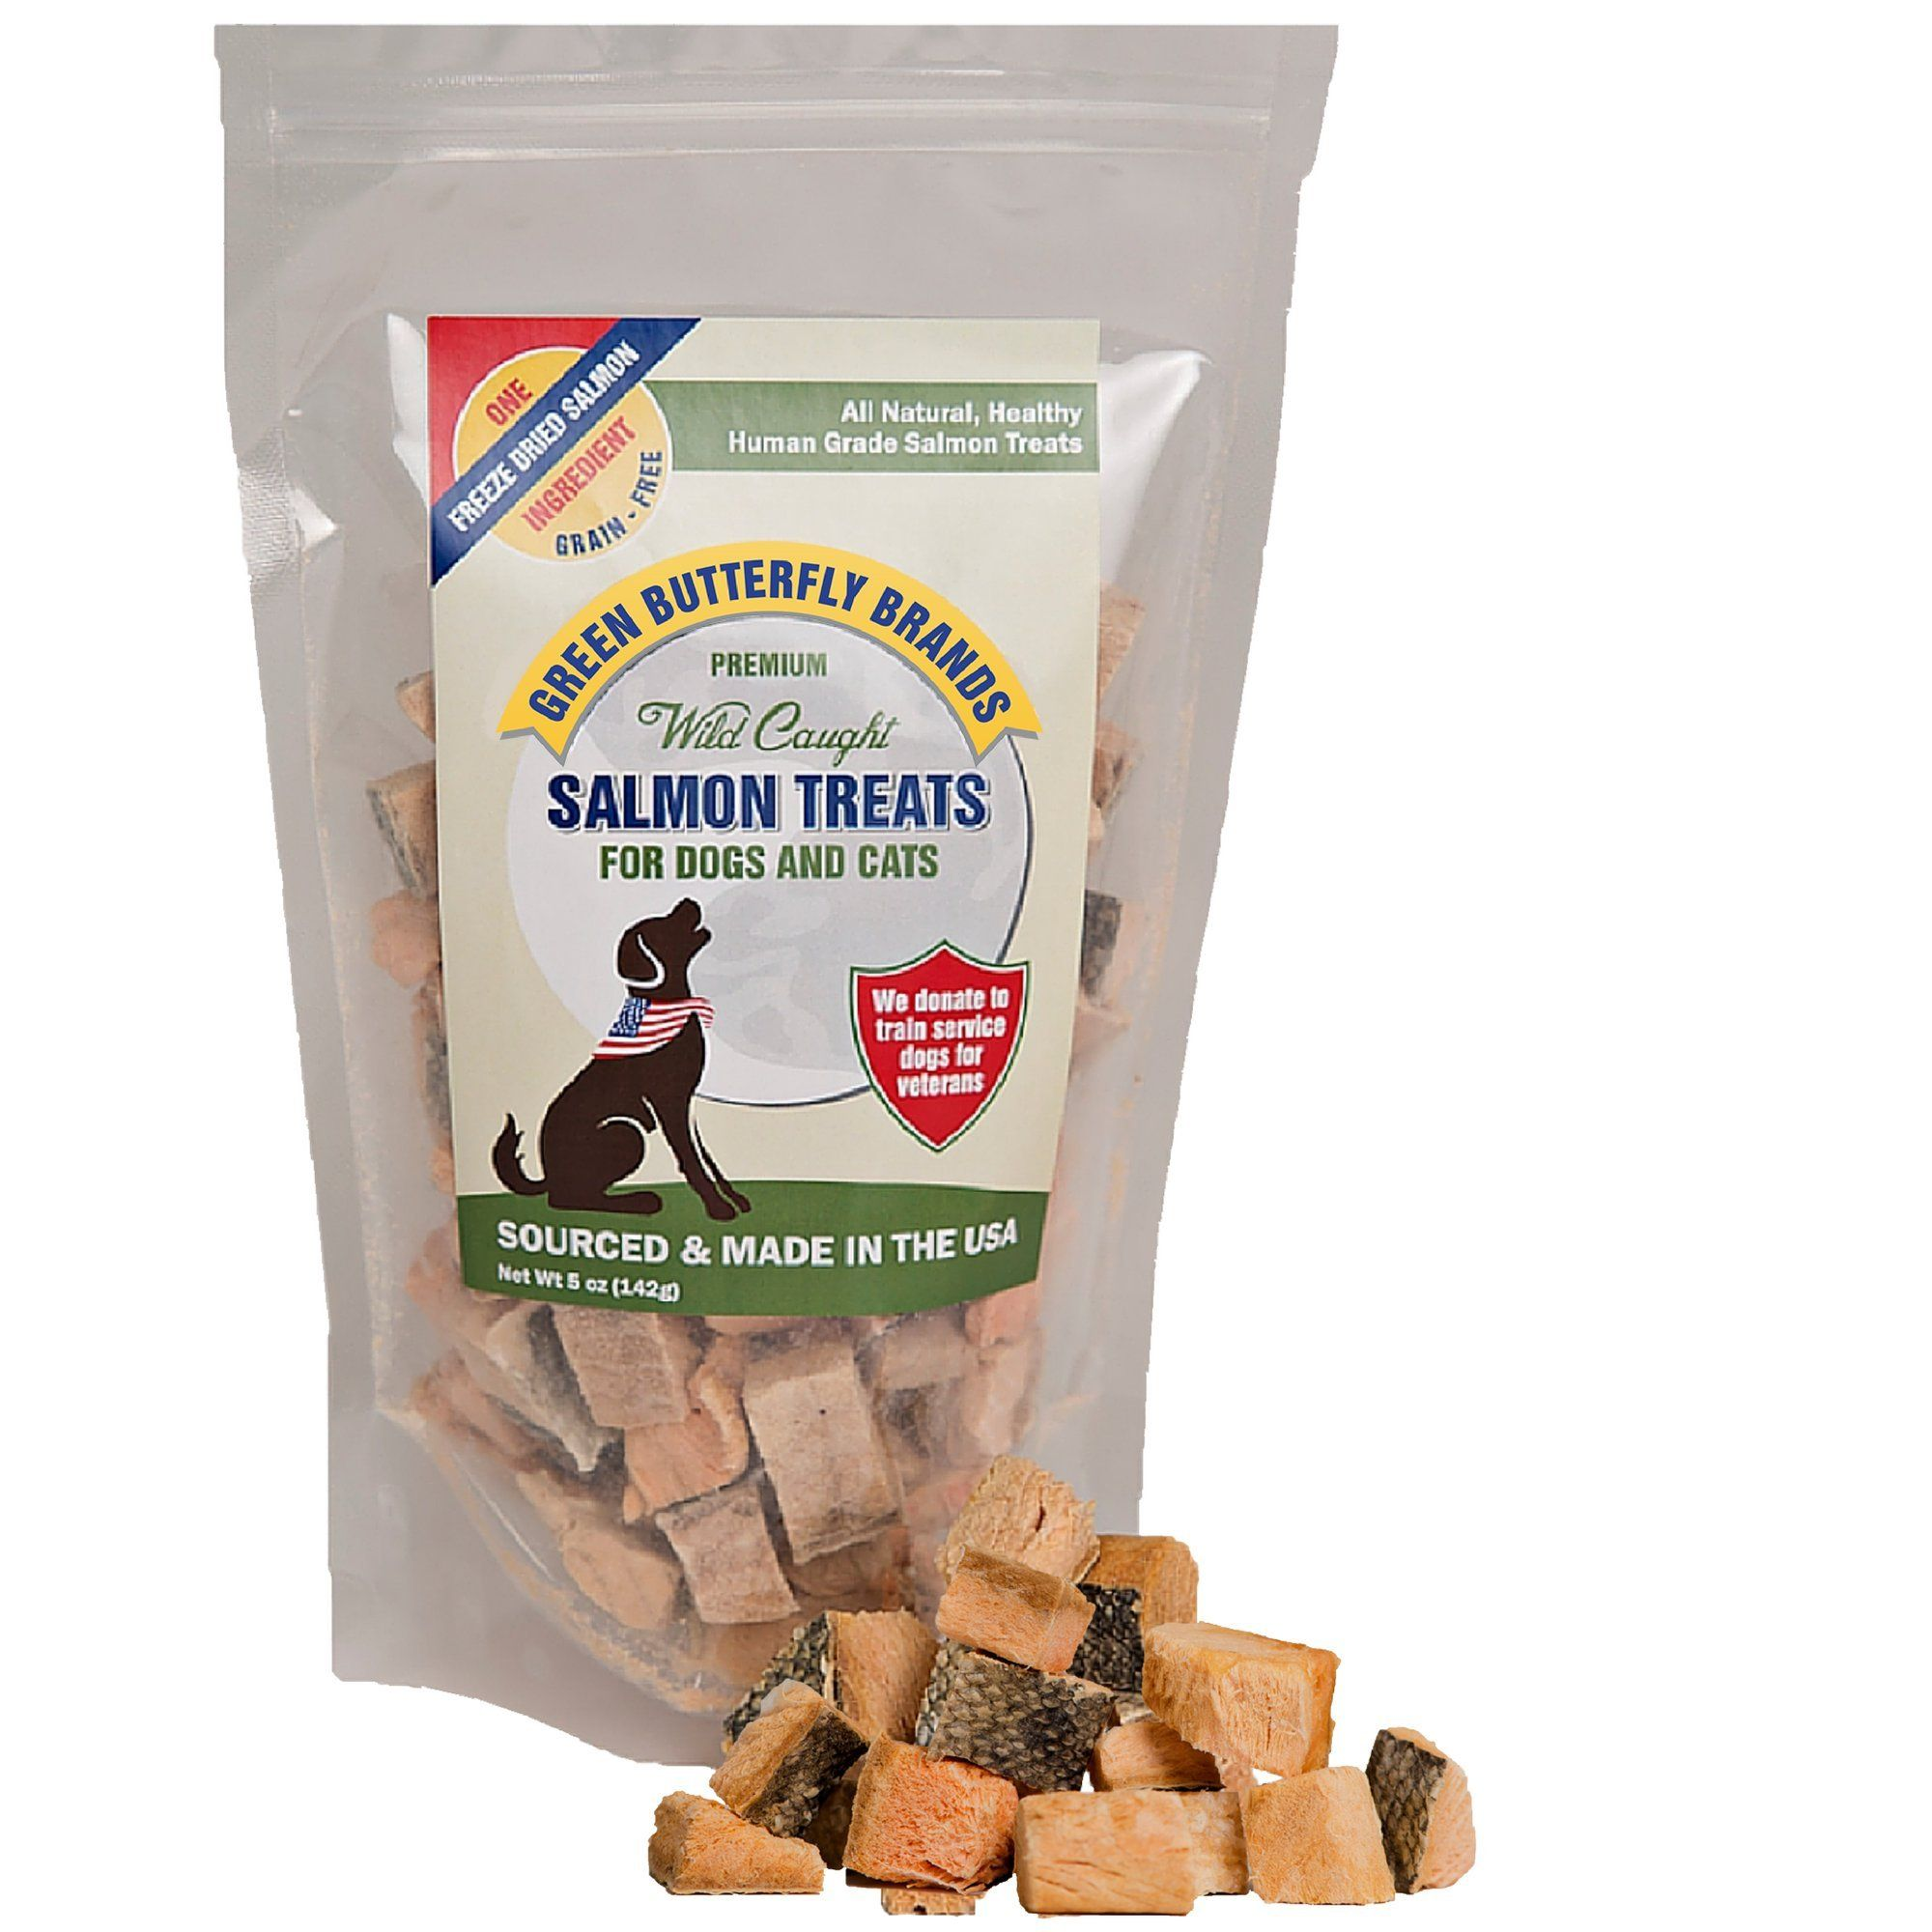 Green Butterfly Brands Salmon Dog Treats Made In Usa Only One